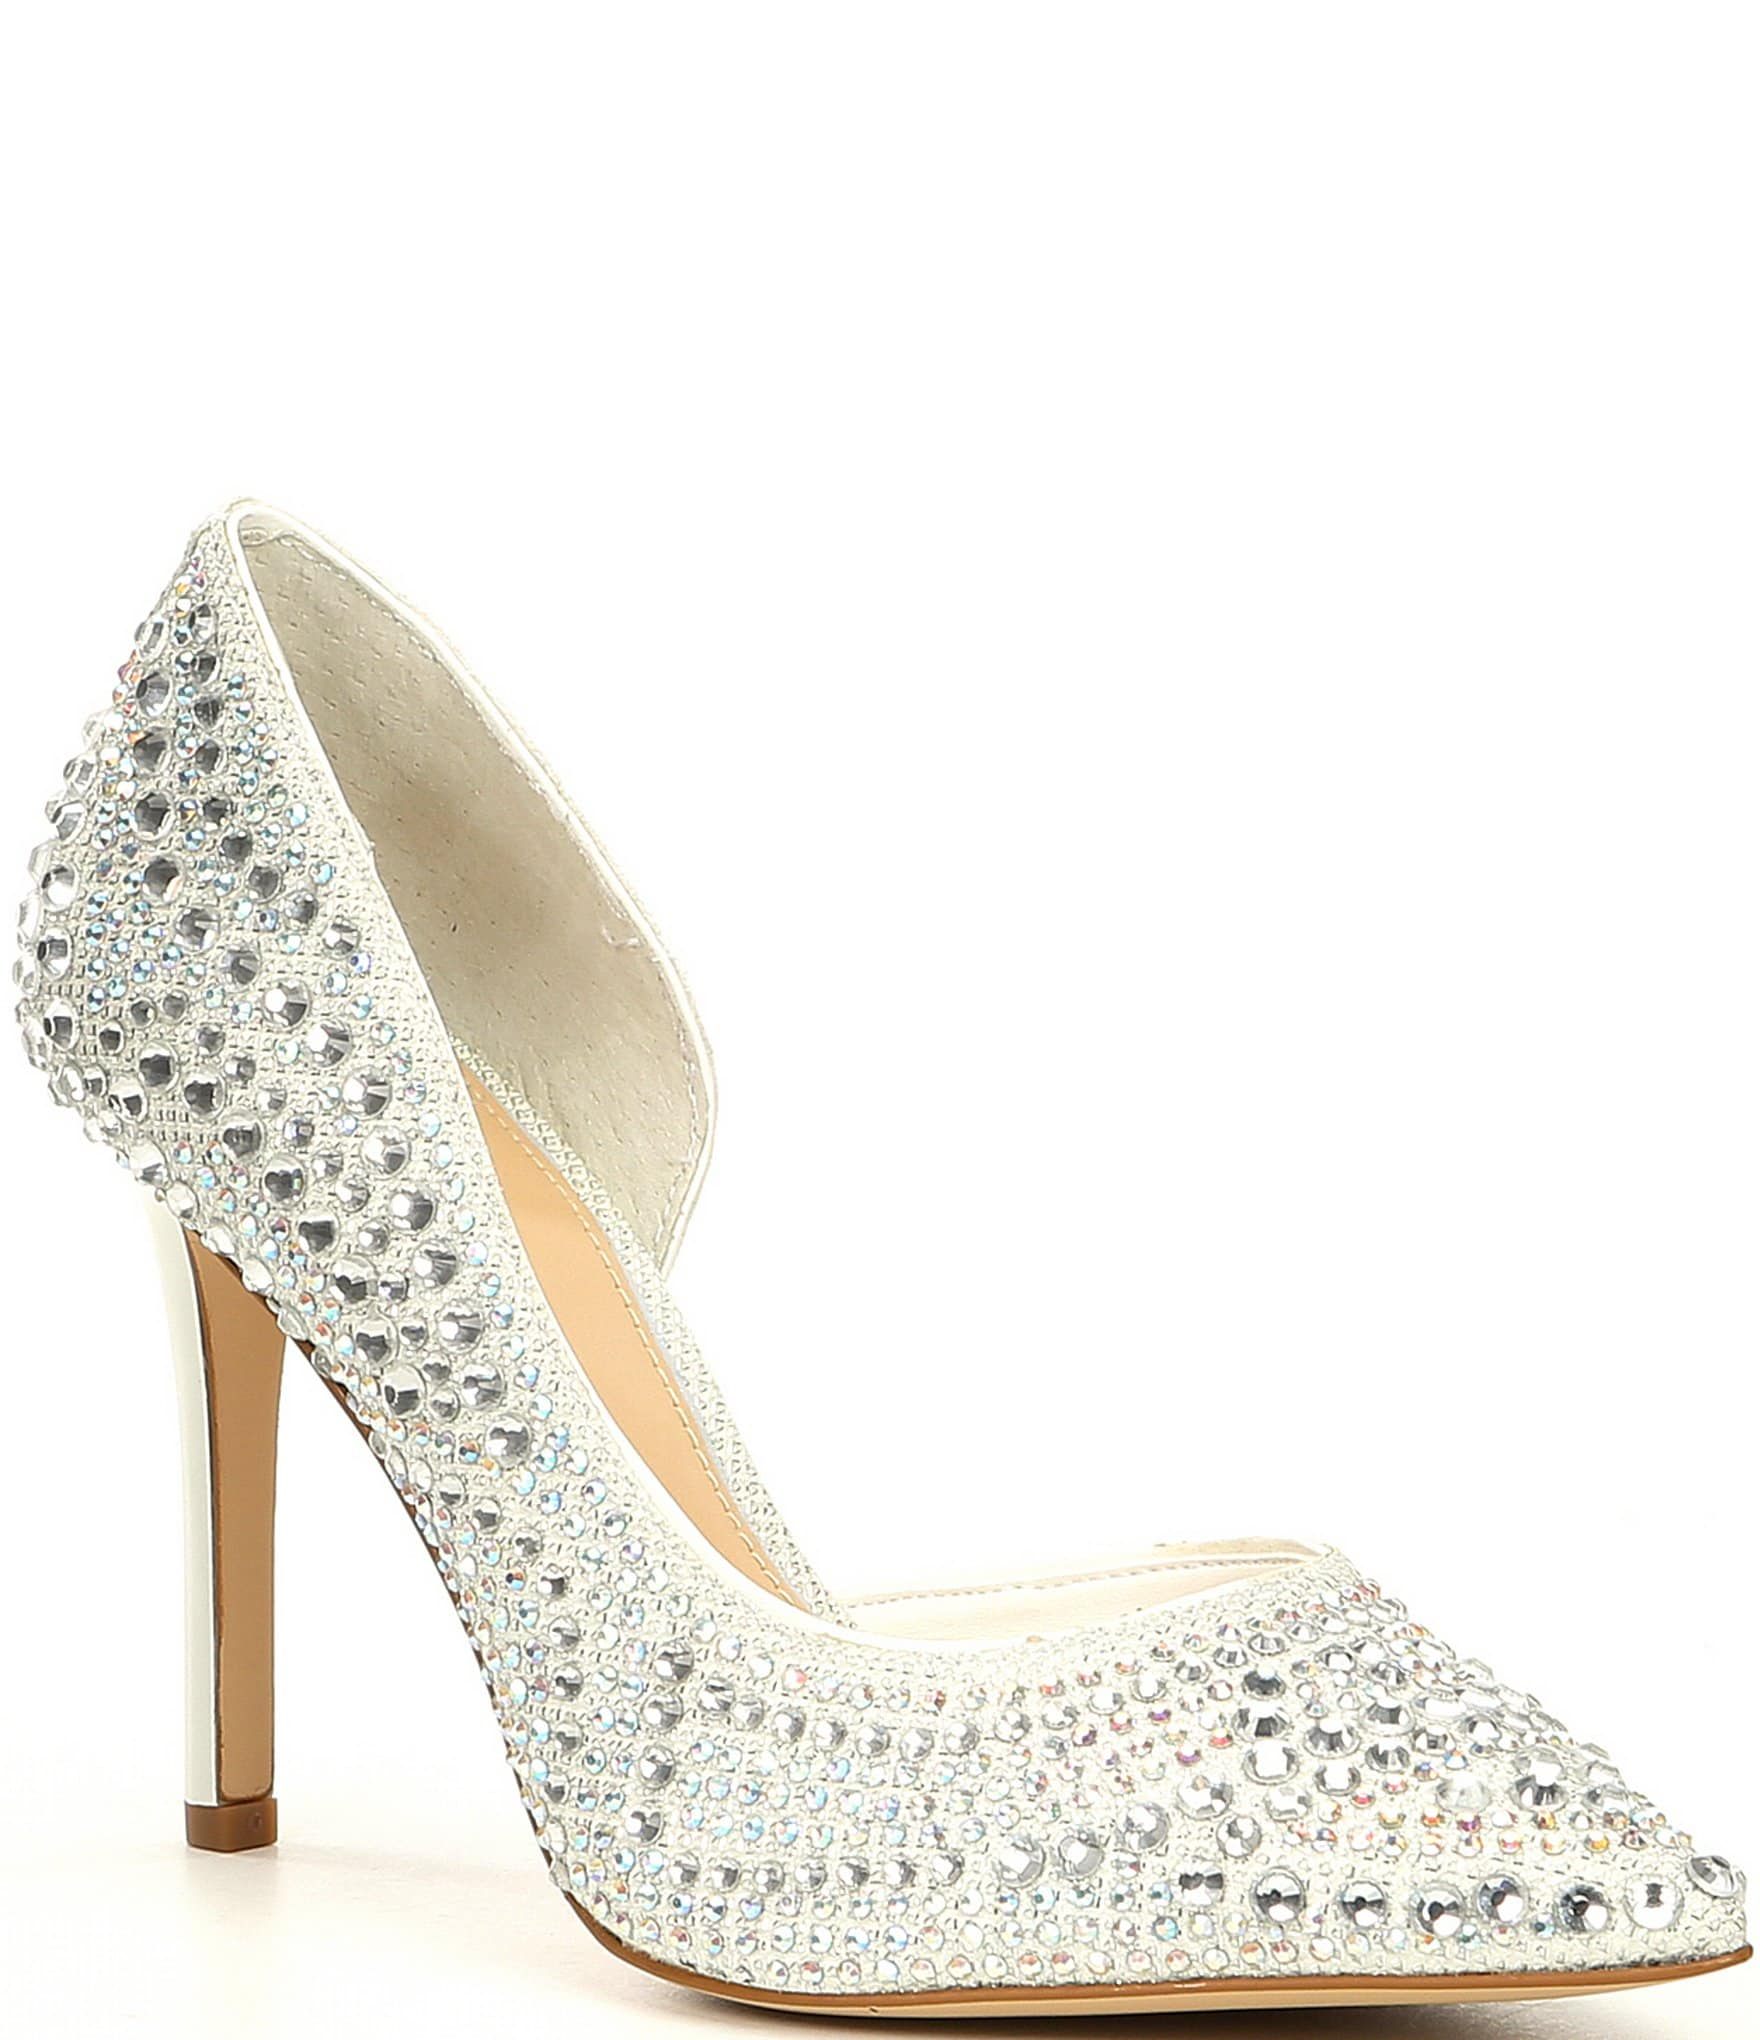 Gianni Bini Bridal Collection Mairah Jewel Embellished d'Orsay Stiletto Pumps